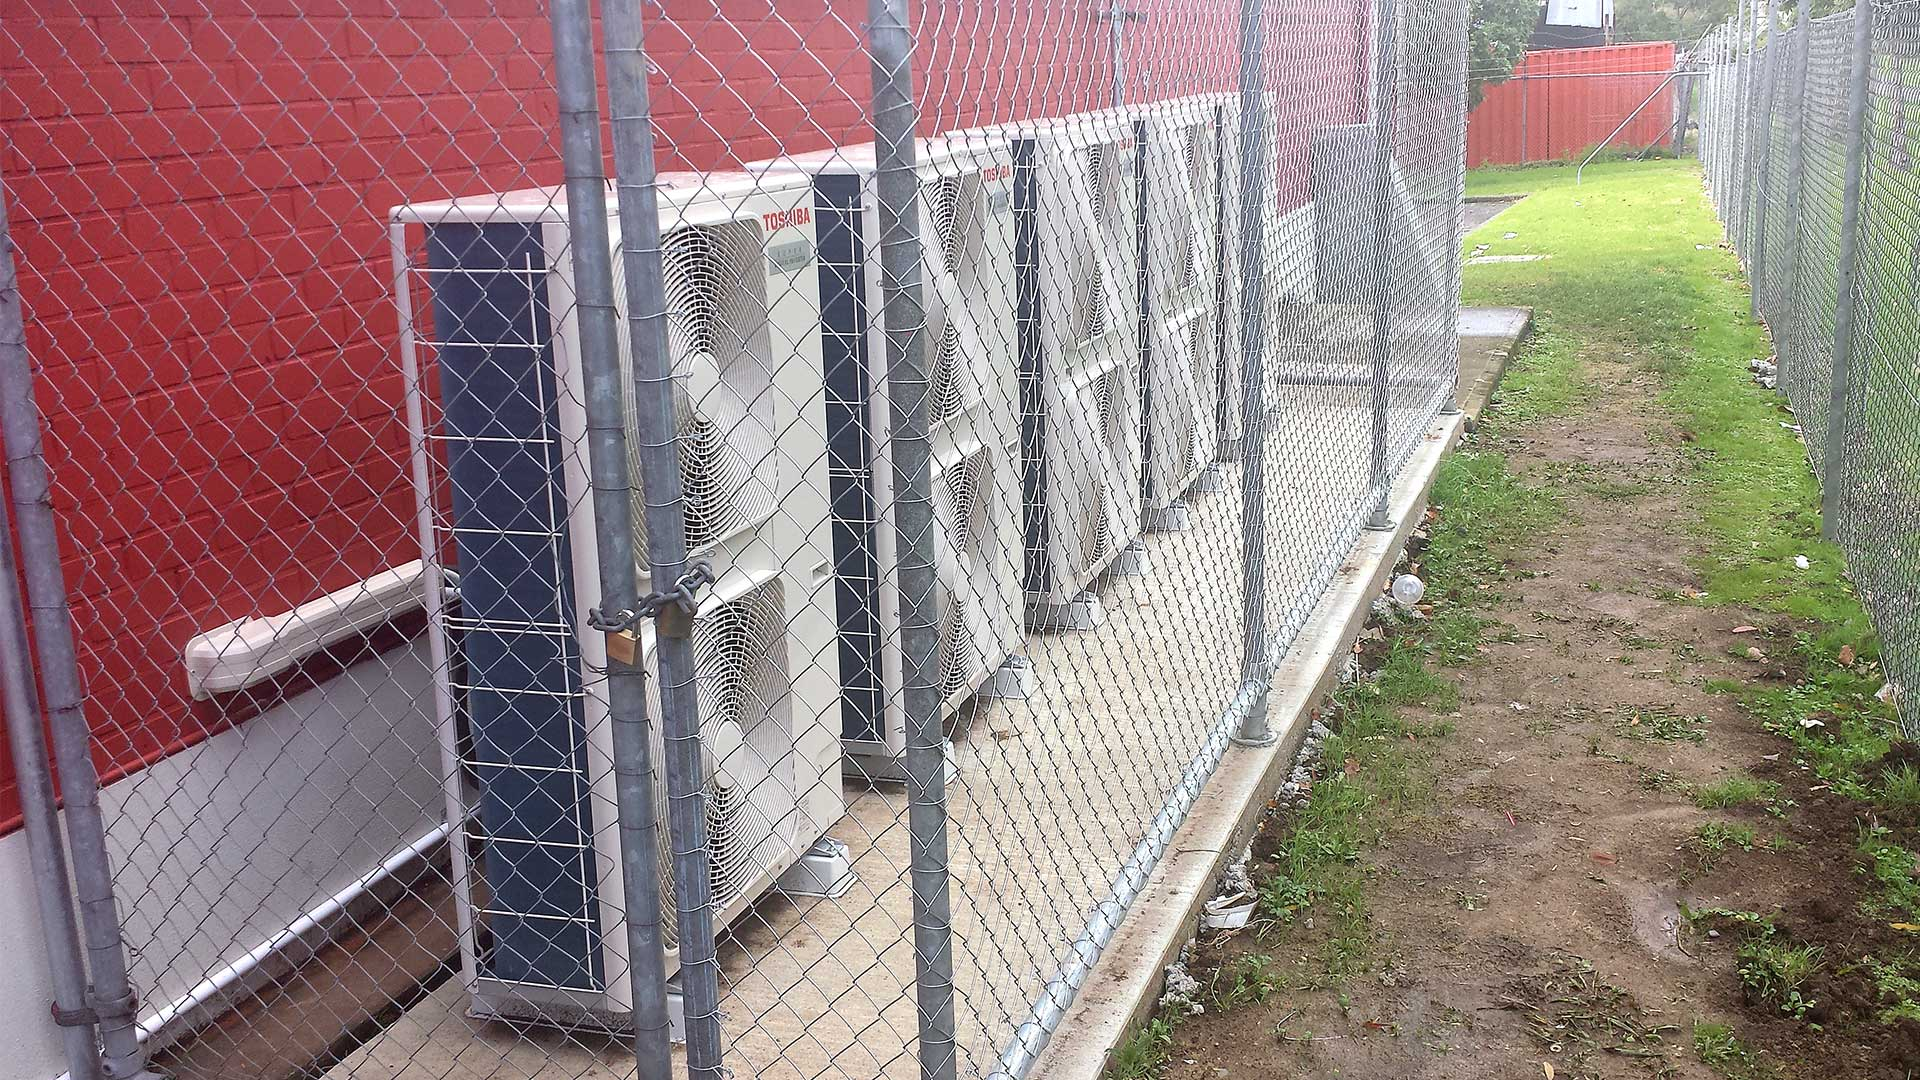 Toshiba air conditioning for commercial premises, Tauranga